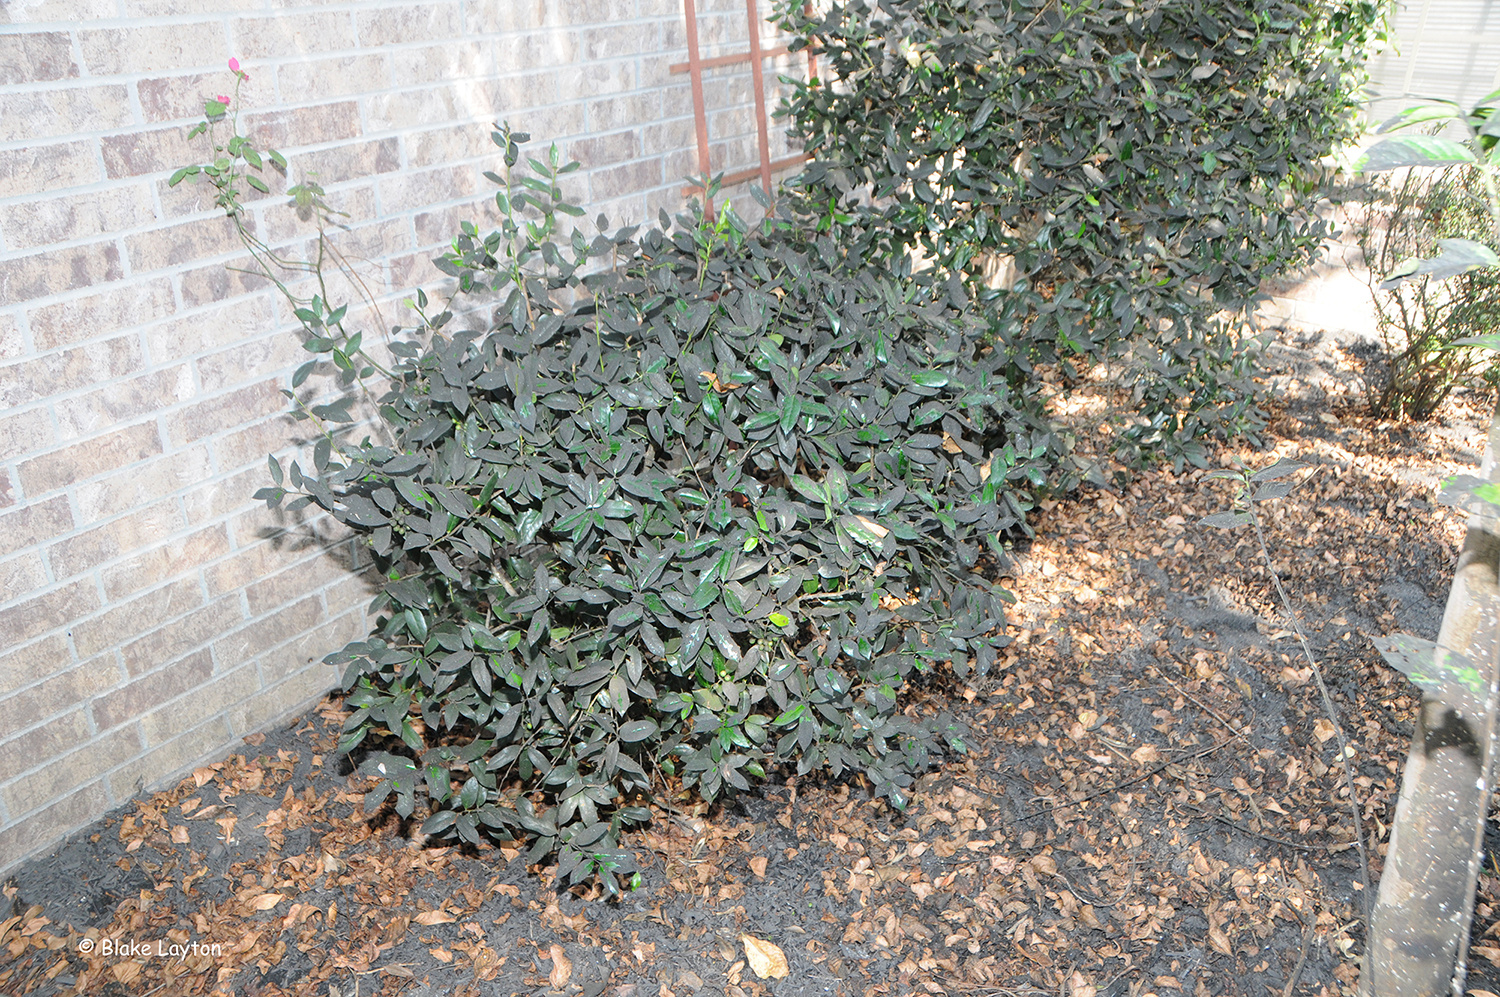 A holly shrub is totally covered with sooty mold and a large crape myrtle is heavily infested with crape myrtle bark scale, and the honeydew produced by these scale fell onto plants growing underneath.